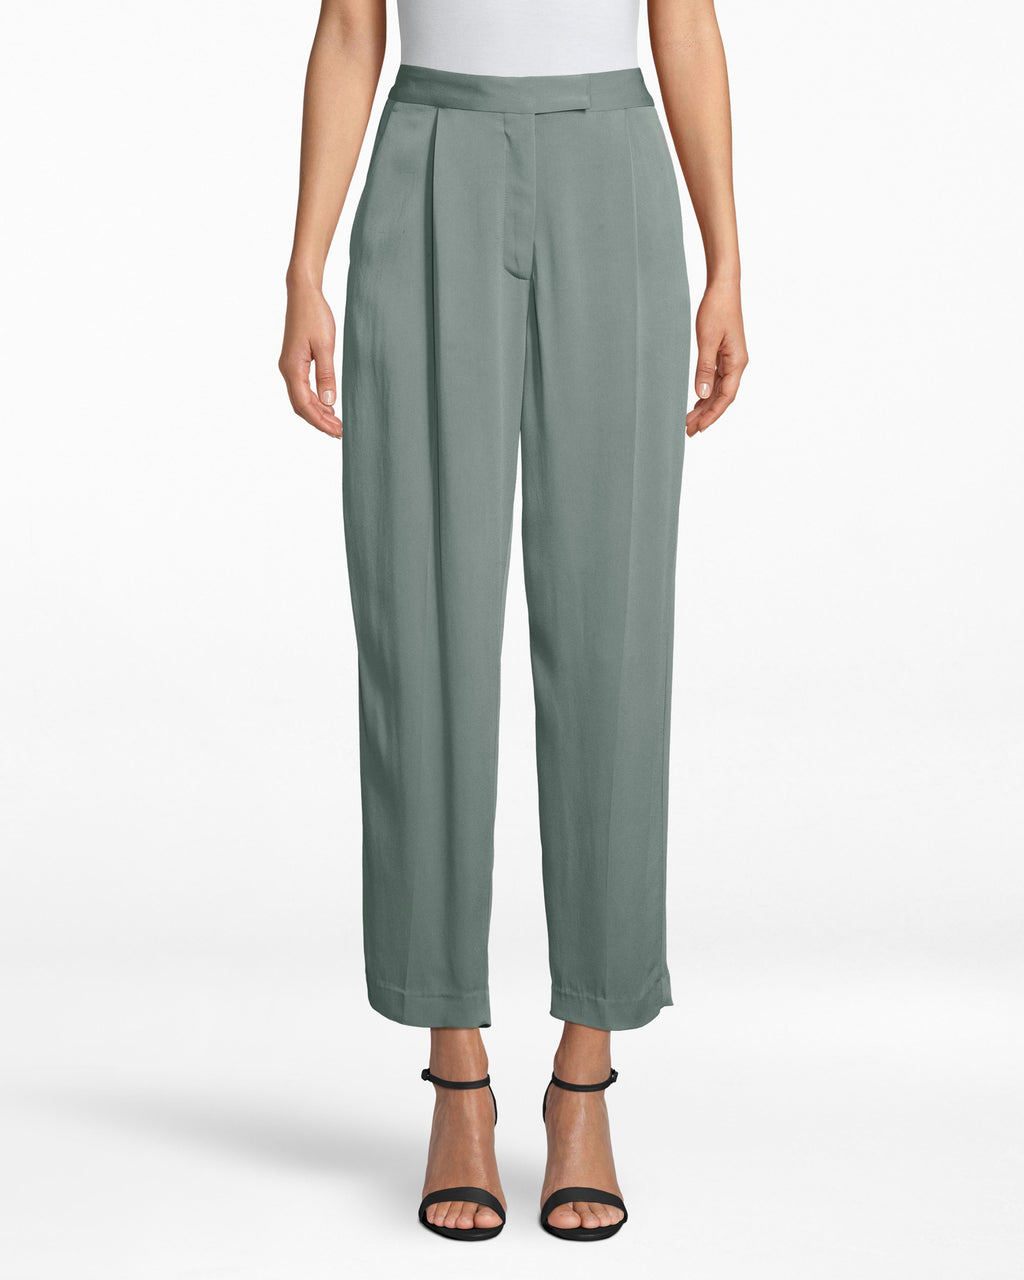 BG10342 - SATIN BACK CREPE TROUSER PANT - bottoms - pants - THESE TAILORED PANTS ARE MADE FROM LIGHTWEIGHT FABRIC AND HIT JUST ABOVE THE ANKLE. WE LOVE PAIRING THEM WITH THE MATCHING JACKET FOR A MONOCHROMATIC LOOK. ZIPPER AND BUTTON FOR CLOSURE.